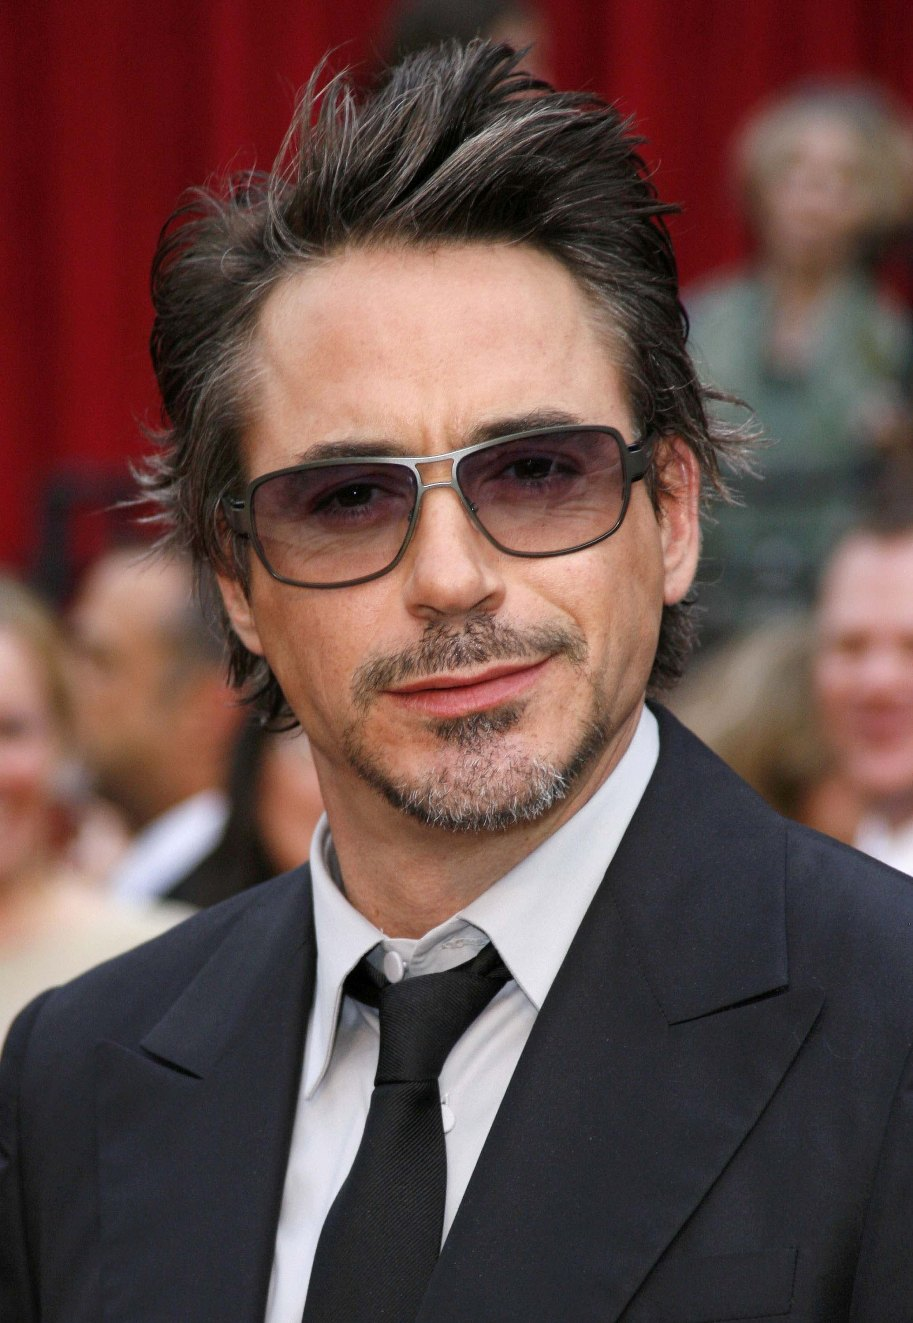 Robert Downey Jr, This Is In His Honor!'